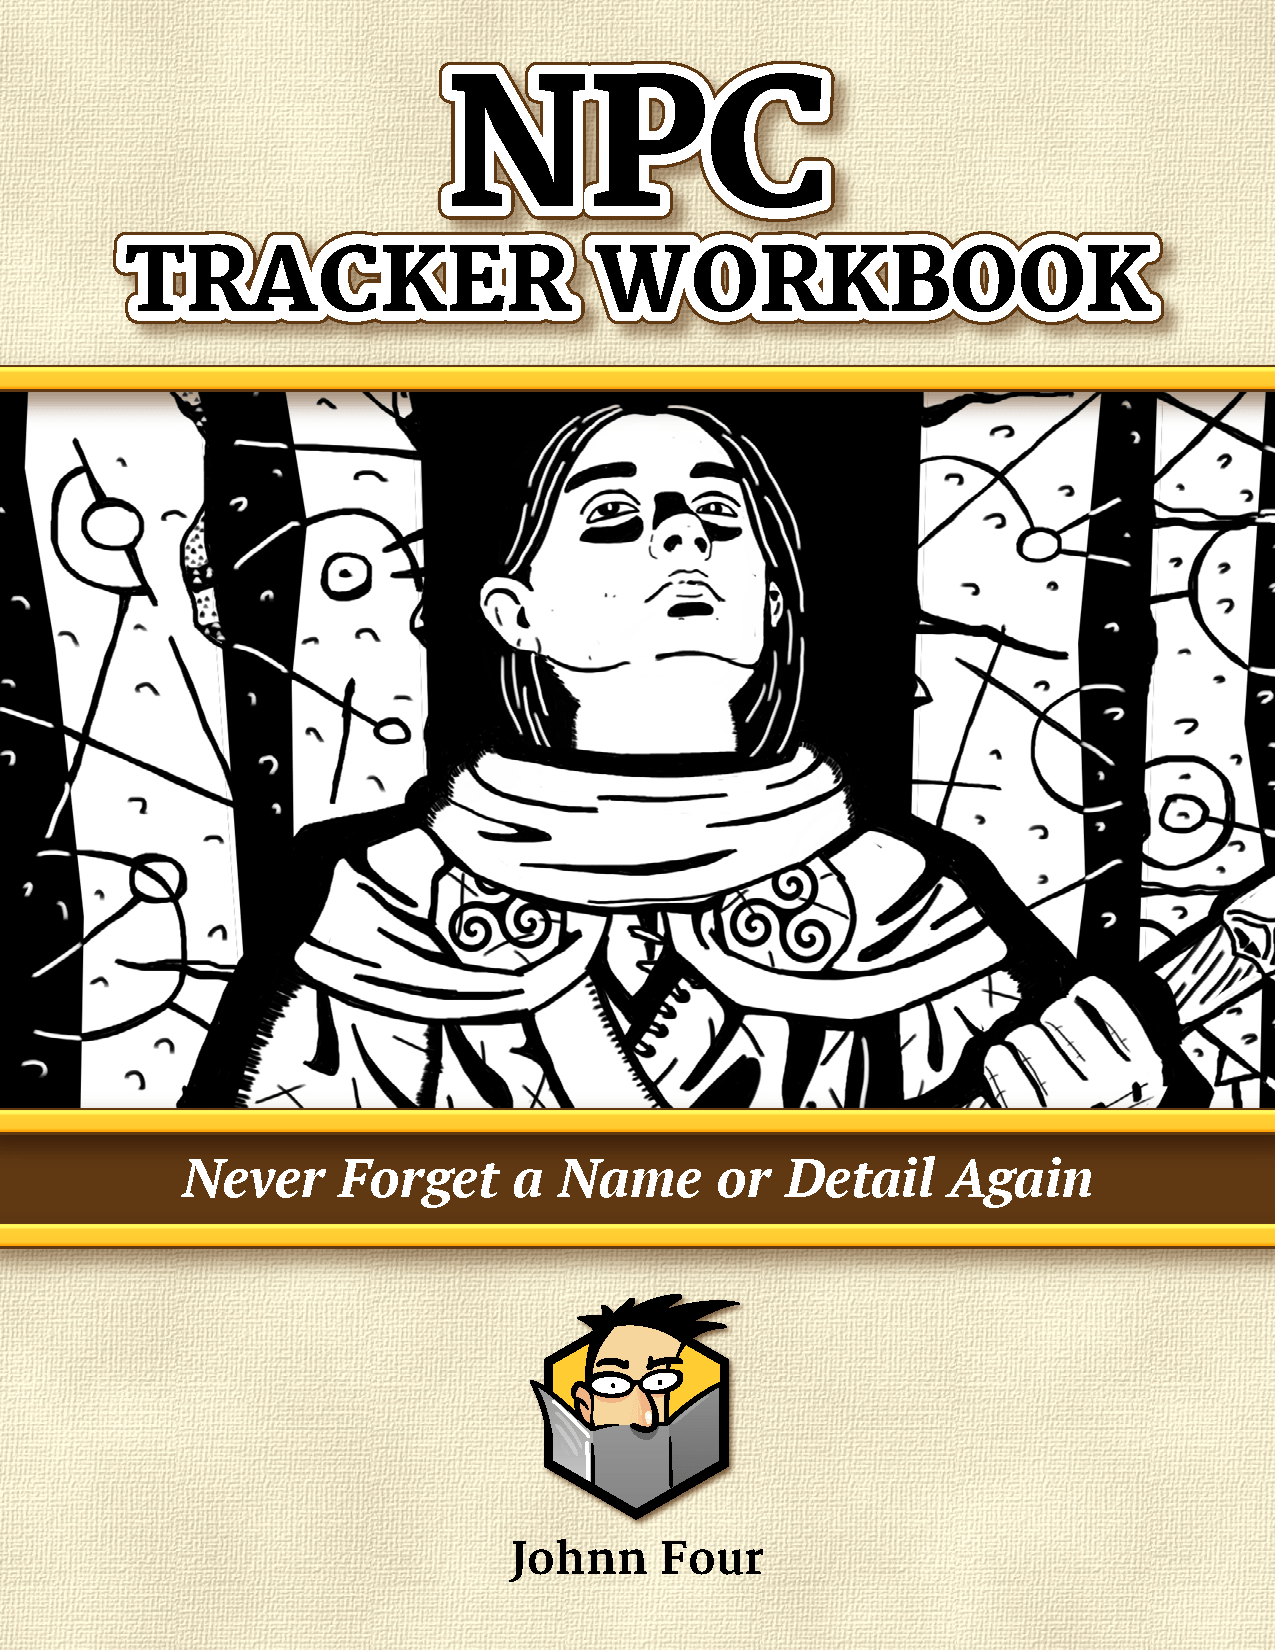 NPC Tracker Workbook cover